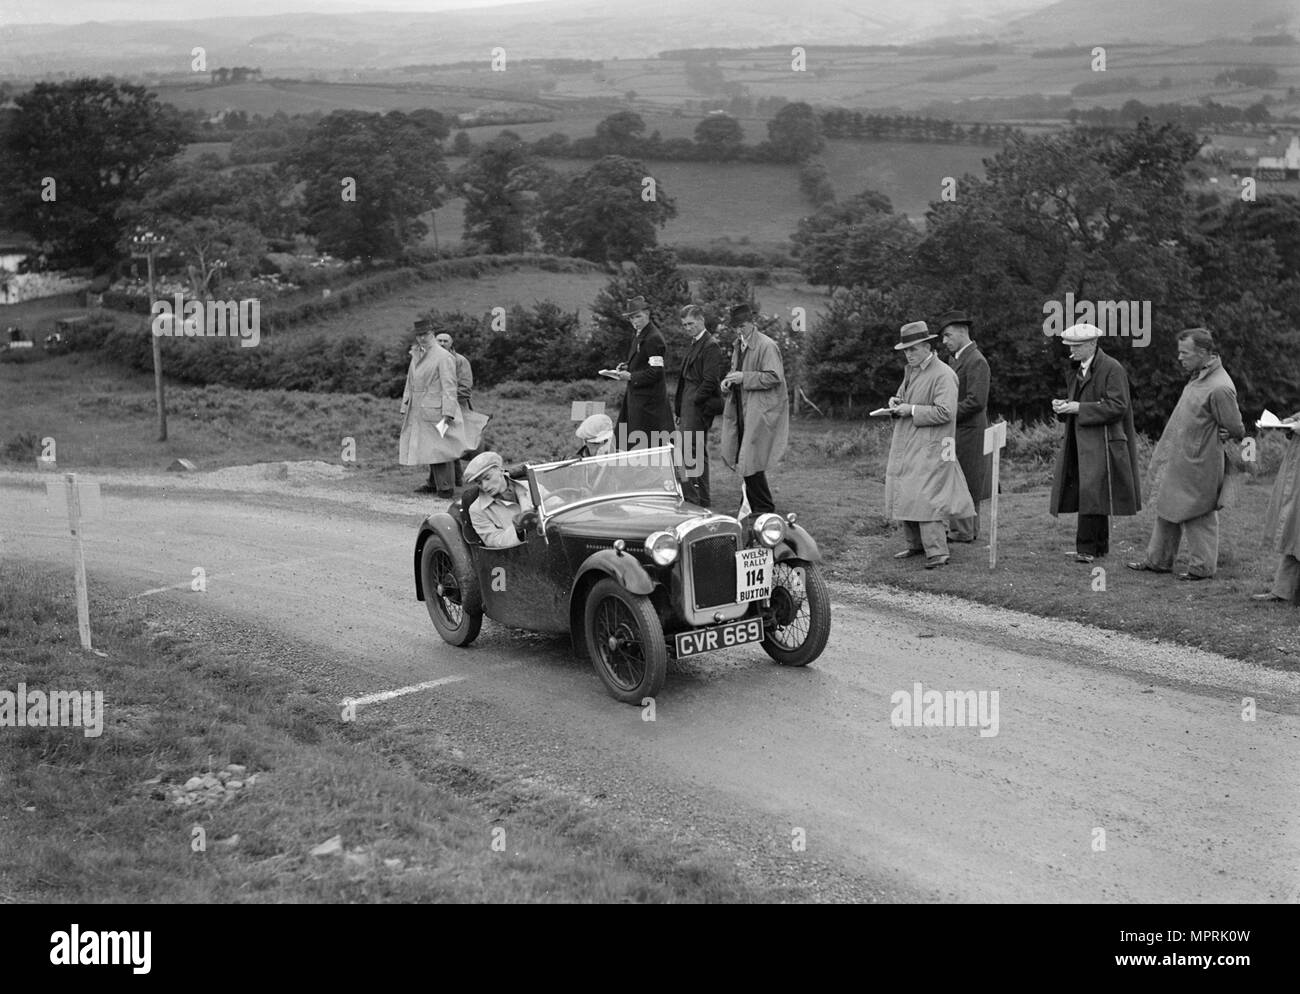 Austin 7 Nippy of DN Kennedy competing in the South Wales Auto Club Welsh Rally, 1937 Artist: Bill Brunell. - Stock Image